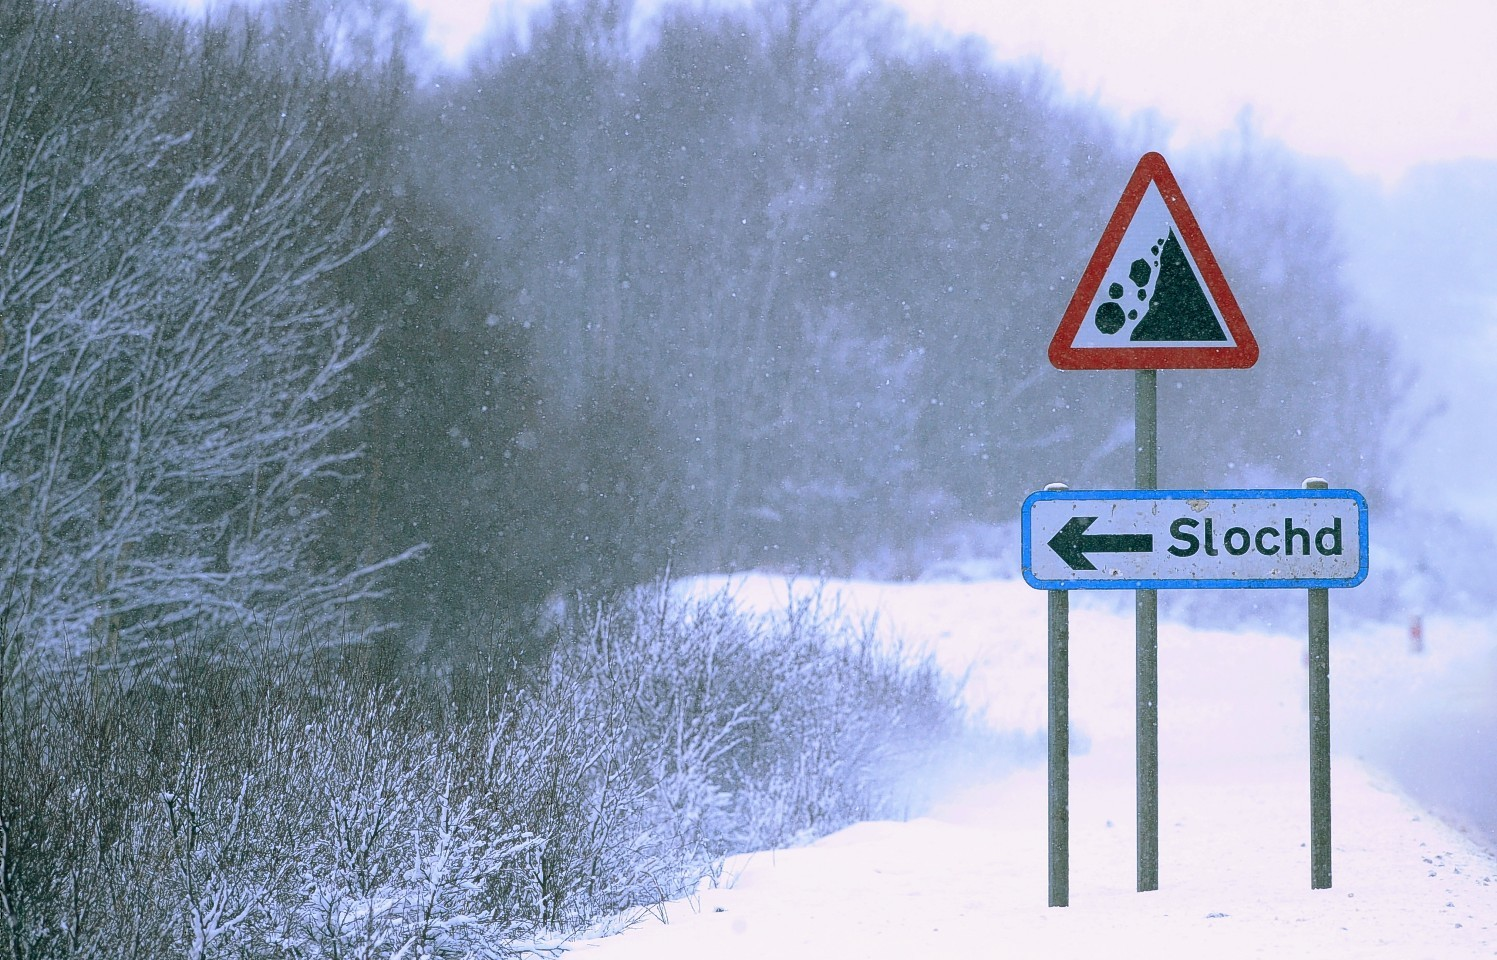 Snow at the Slochd on the A9 yesterday